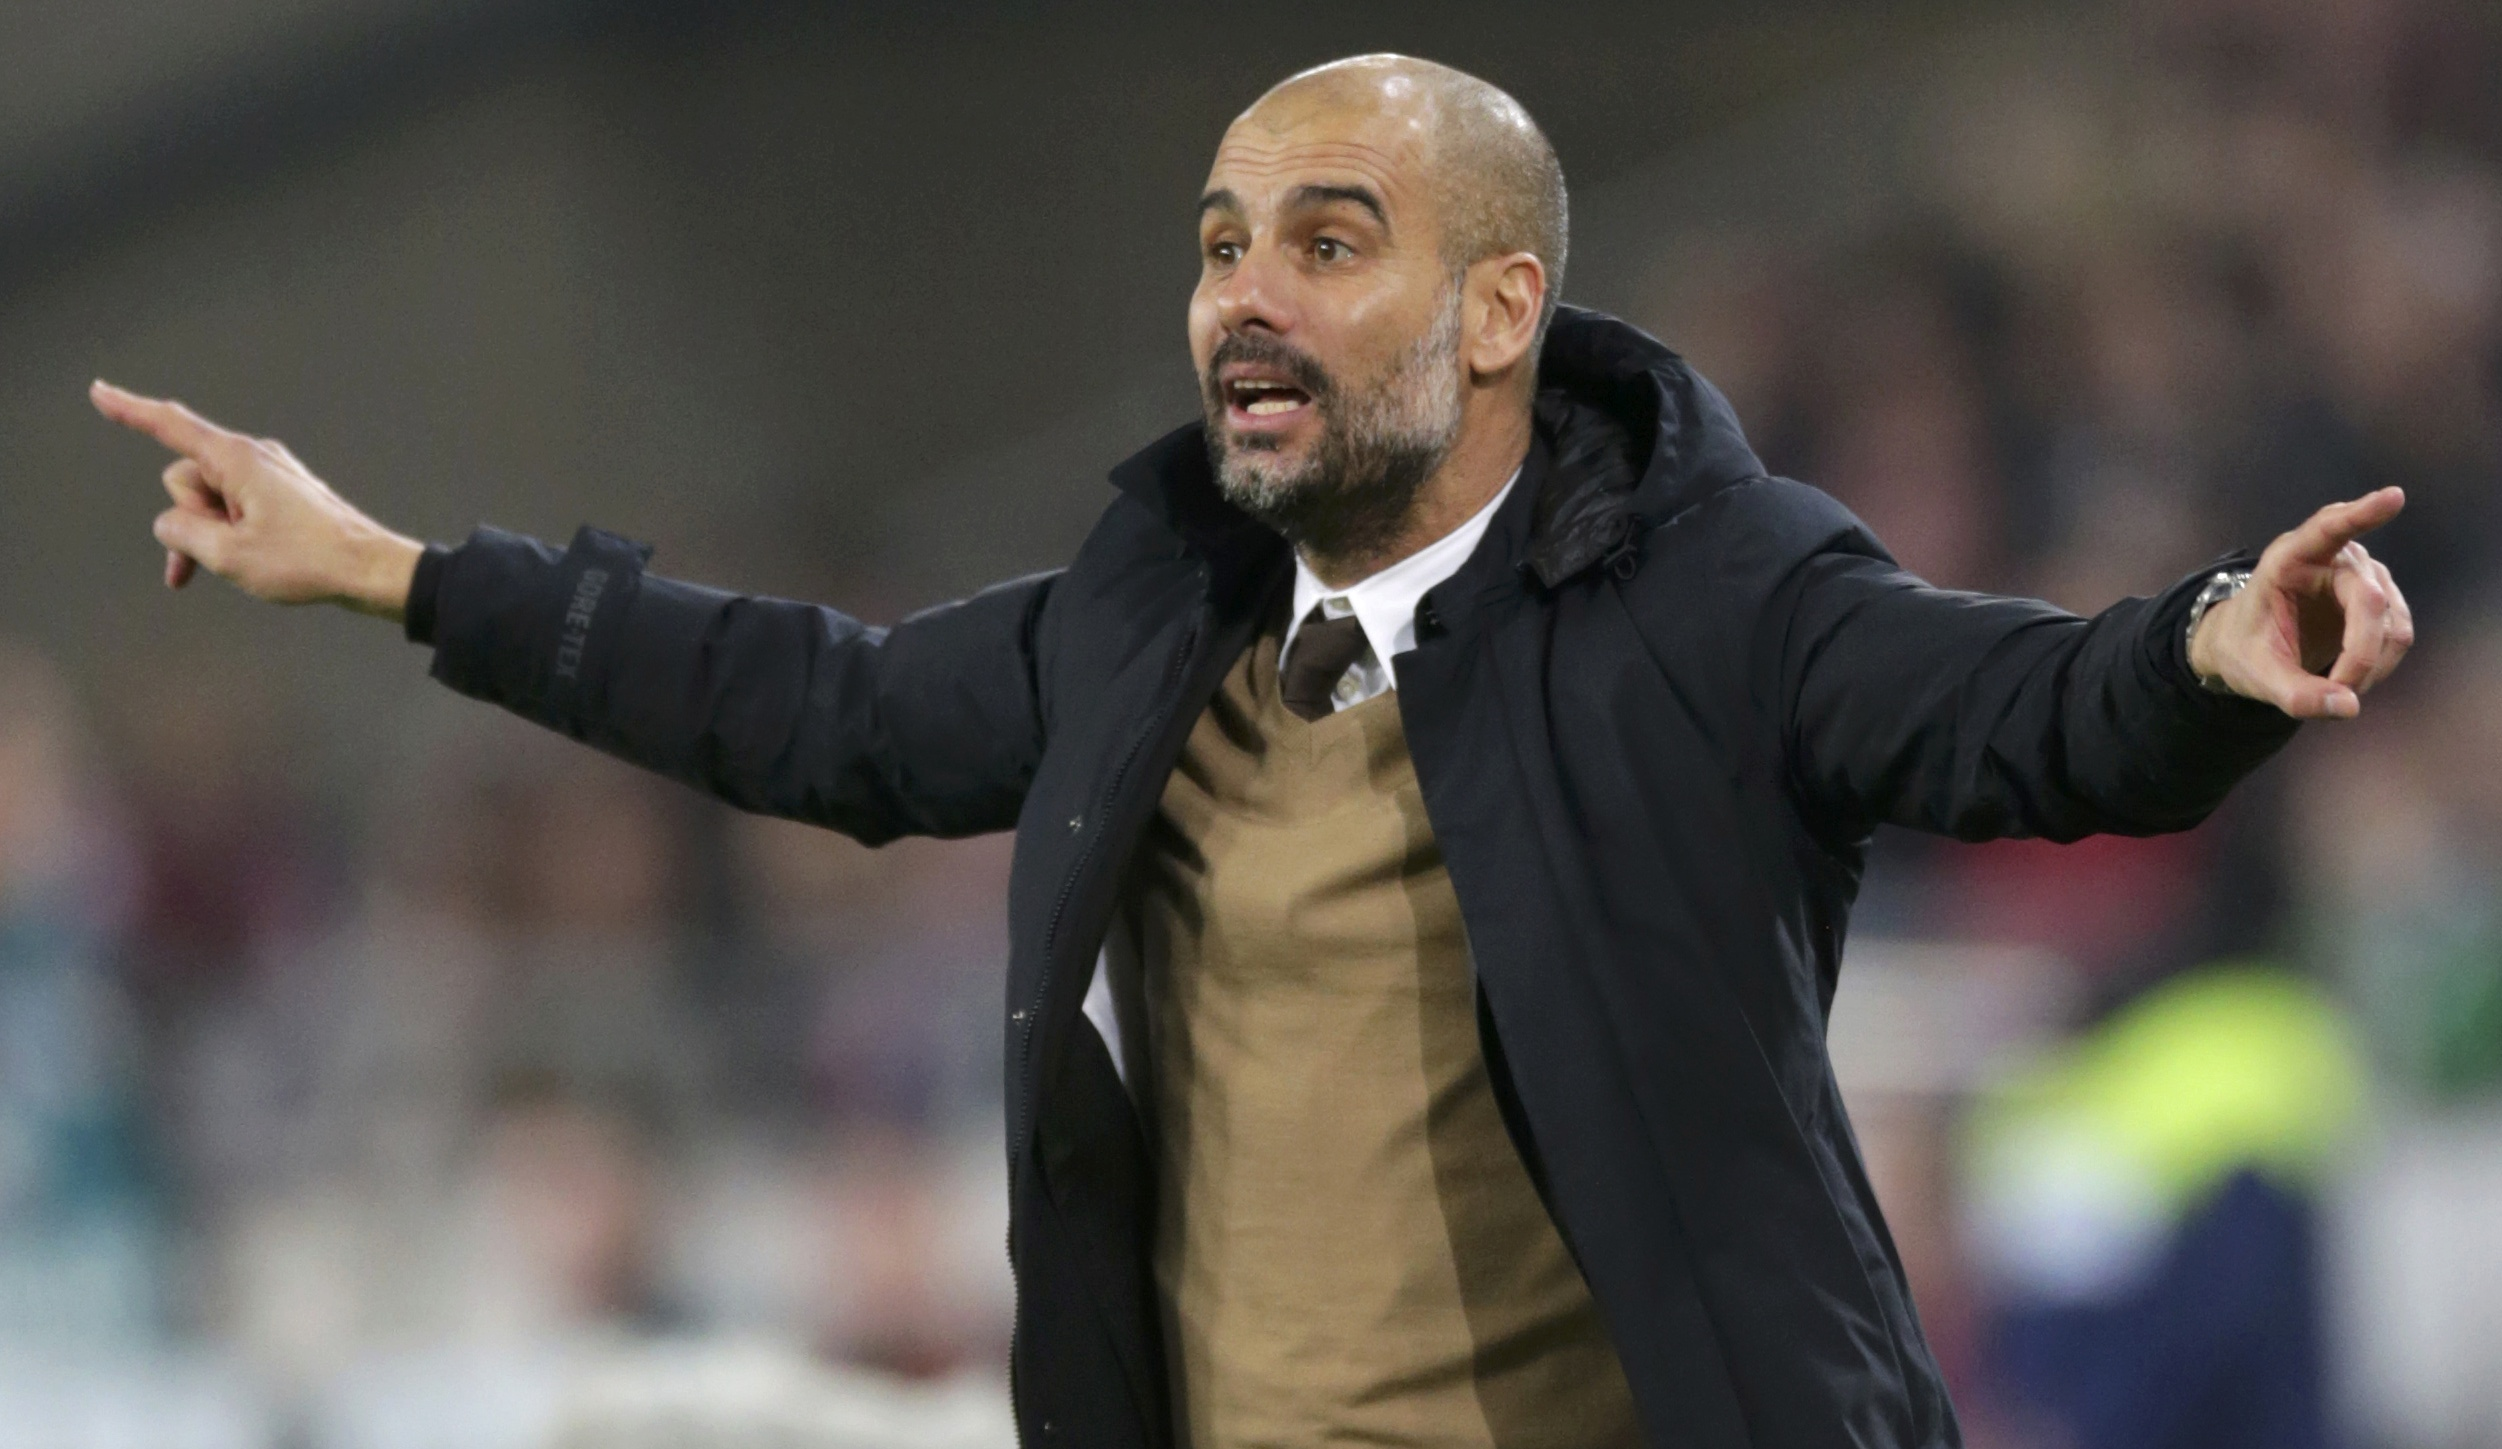 Bayern Munich's coach Pep Guardiola during the match on December 5, 2015. Photo: Reuters